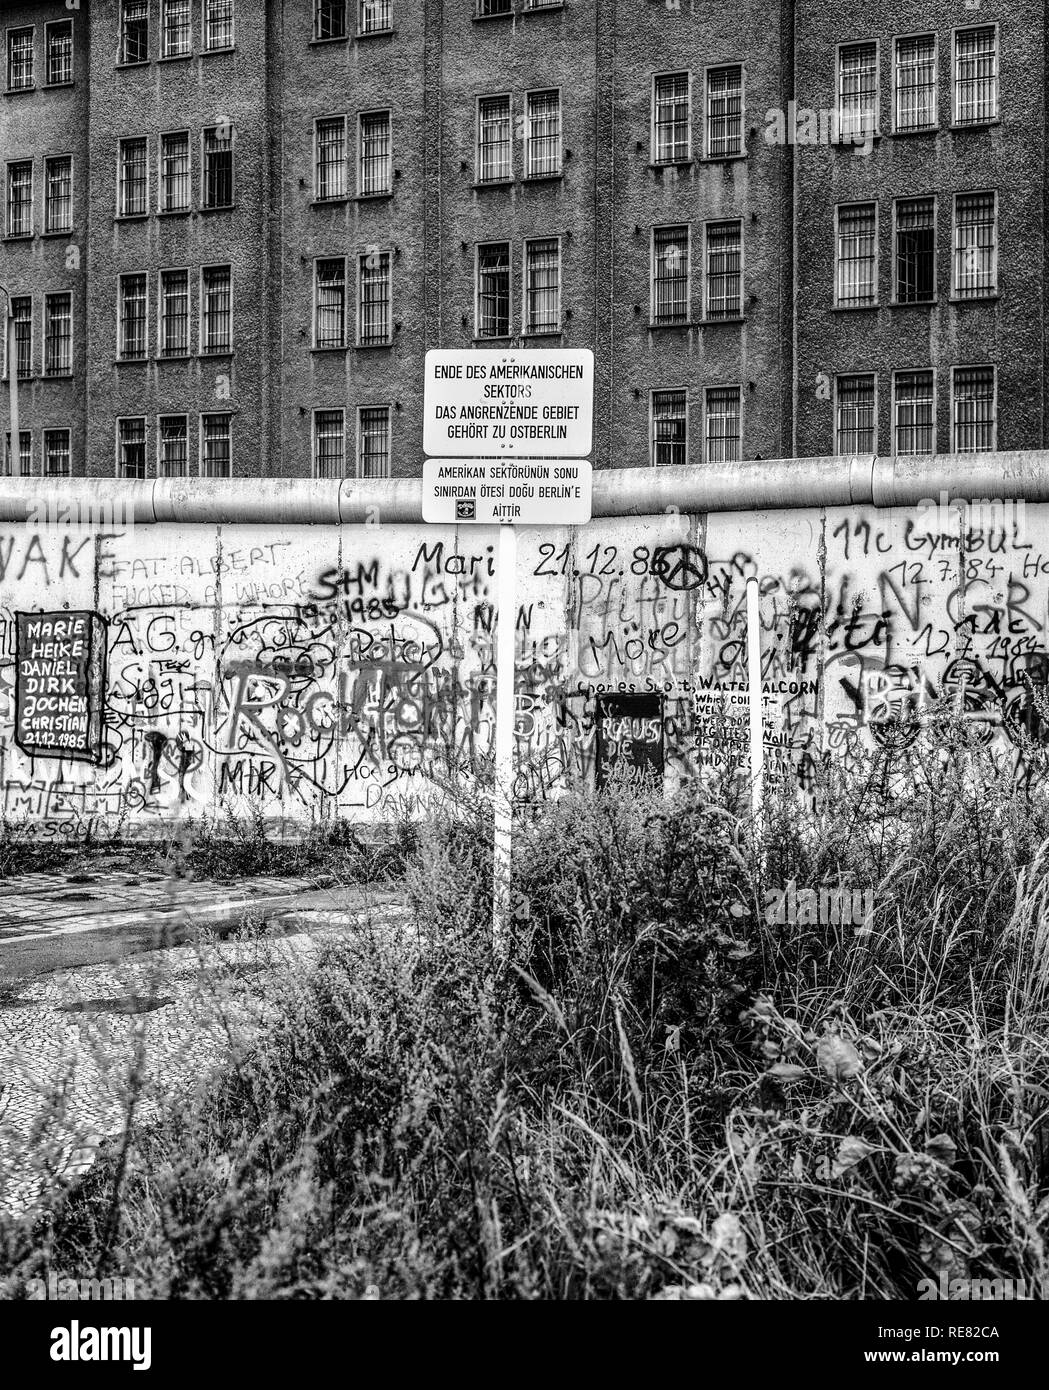 August 1986, Berlin Wall graffitis, warning sign for end of American sector, East Berlin building, West Berlin side, Germany, Europe, - Stock Image